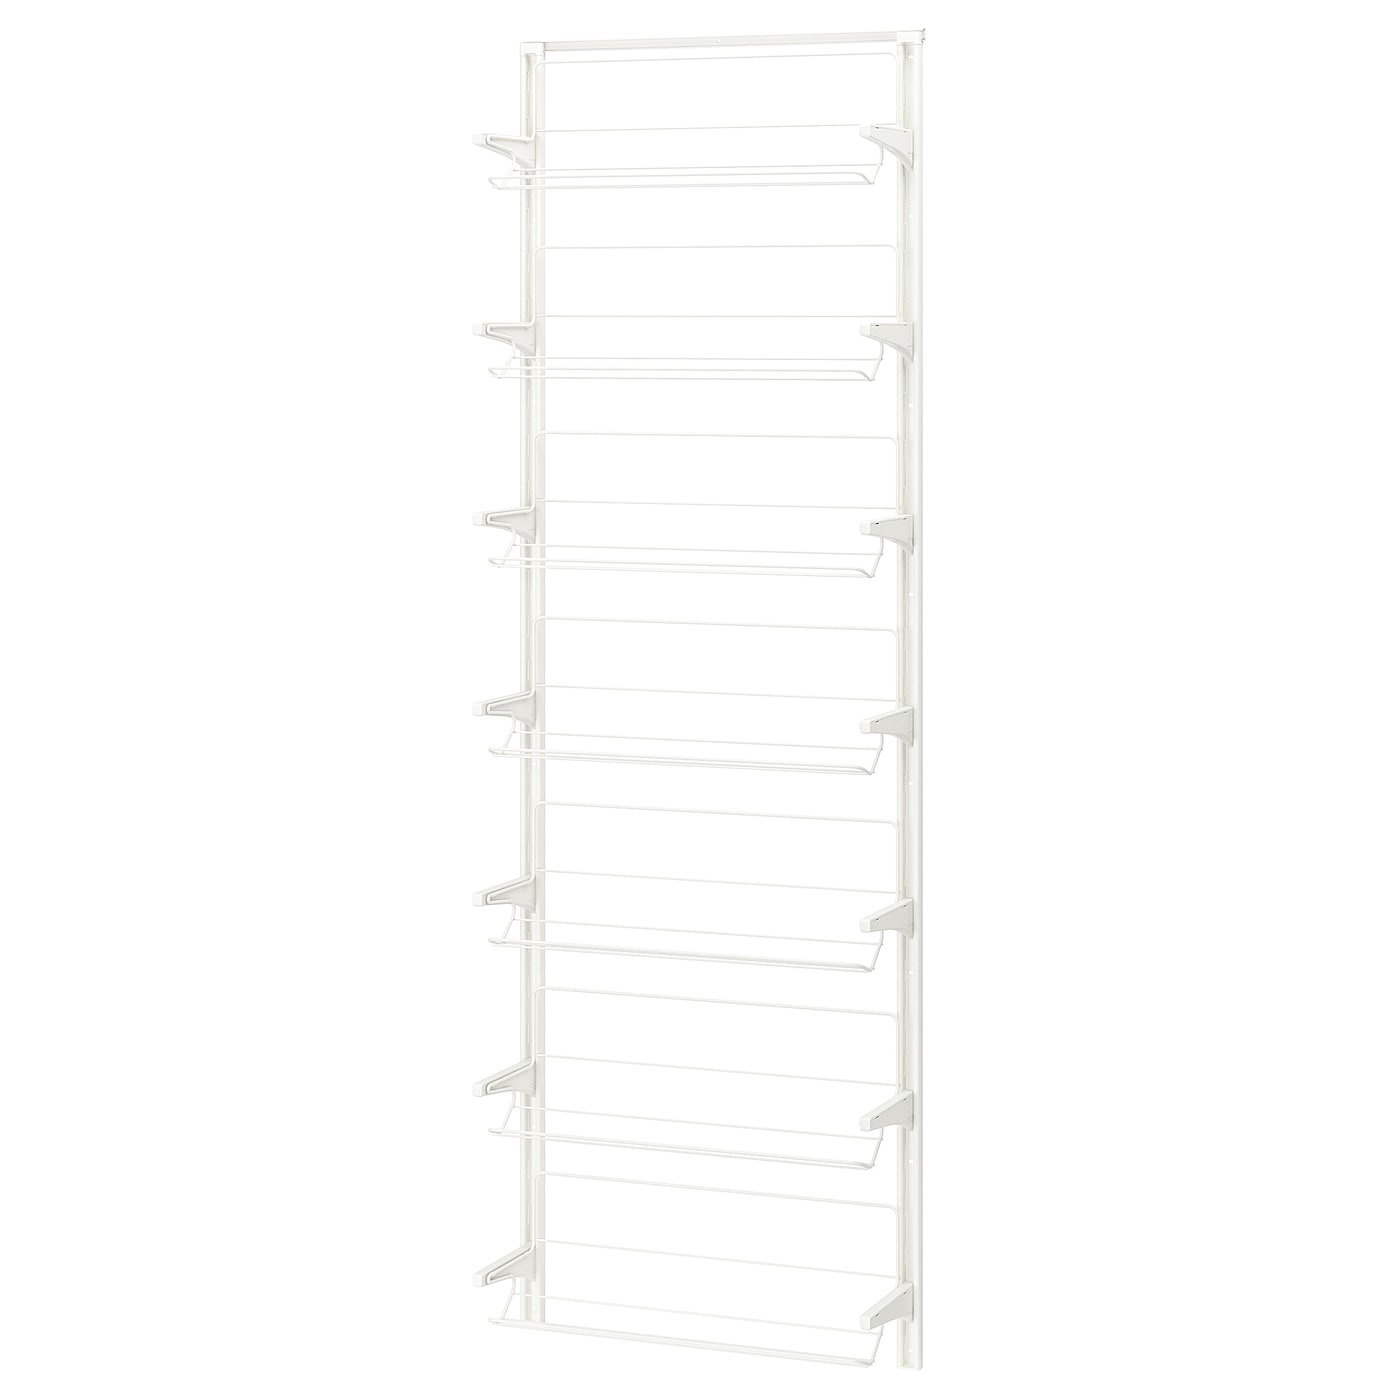 IKEA ALGOT wall upright/shoe organiser Can also be used in bathrooms and other damp areas indoors.